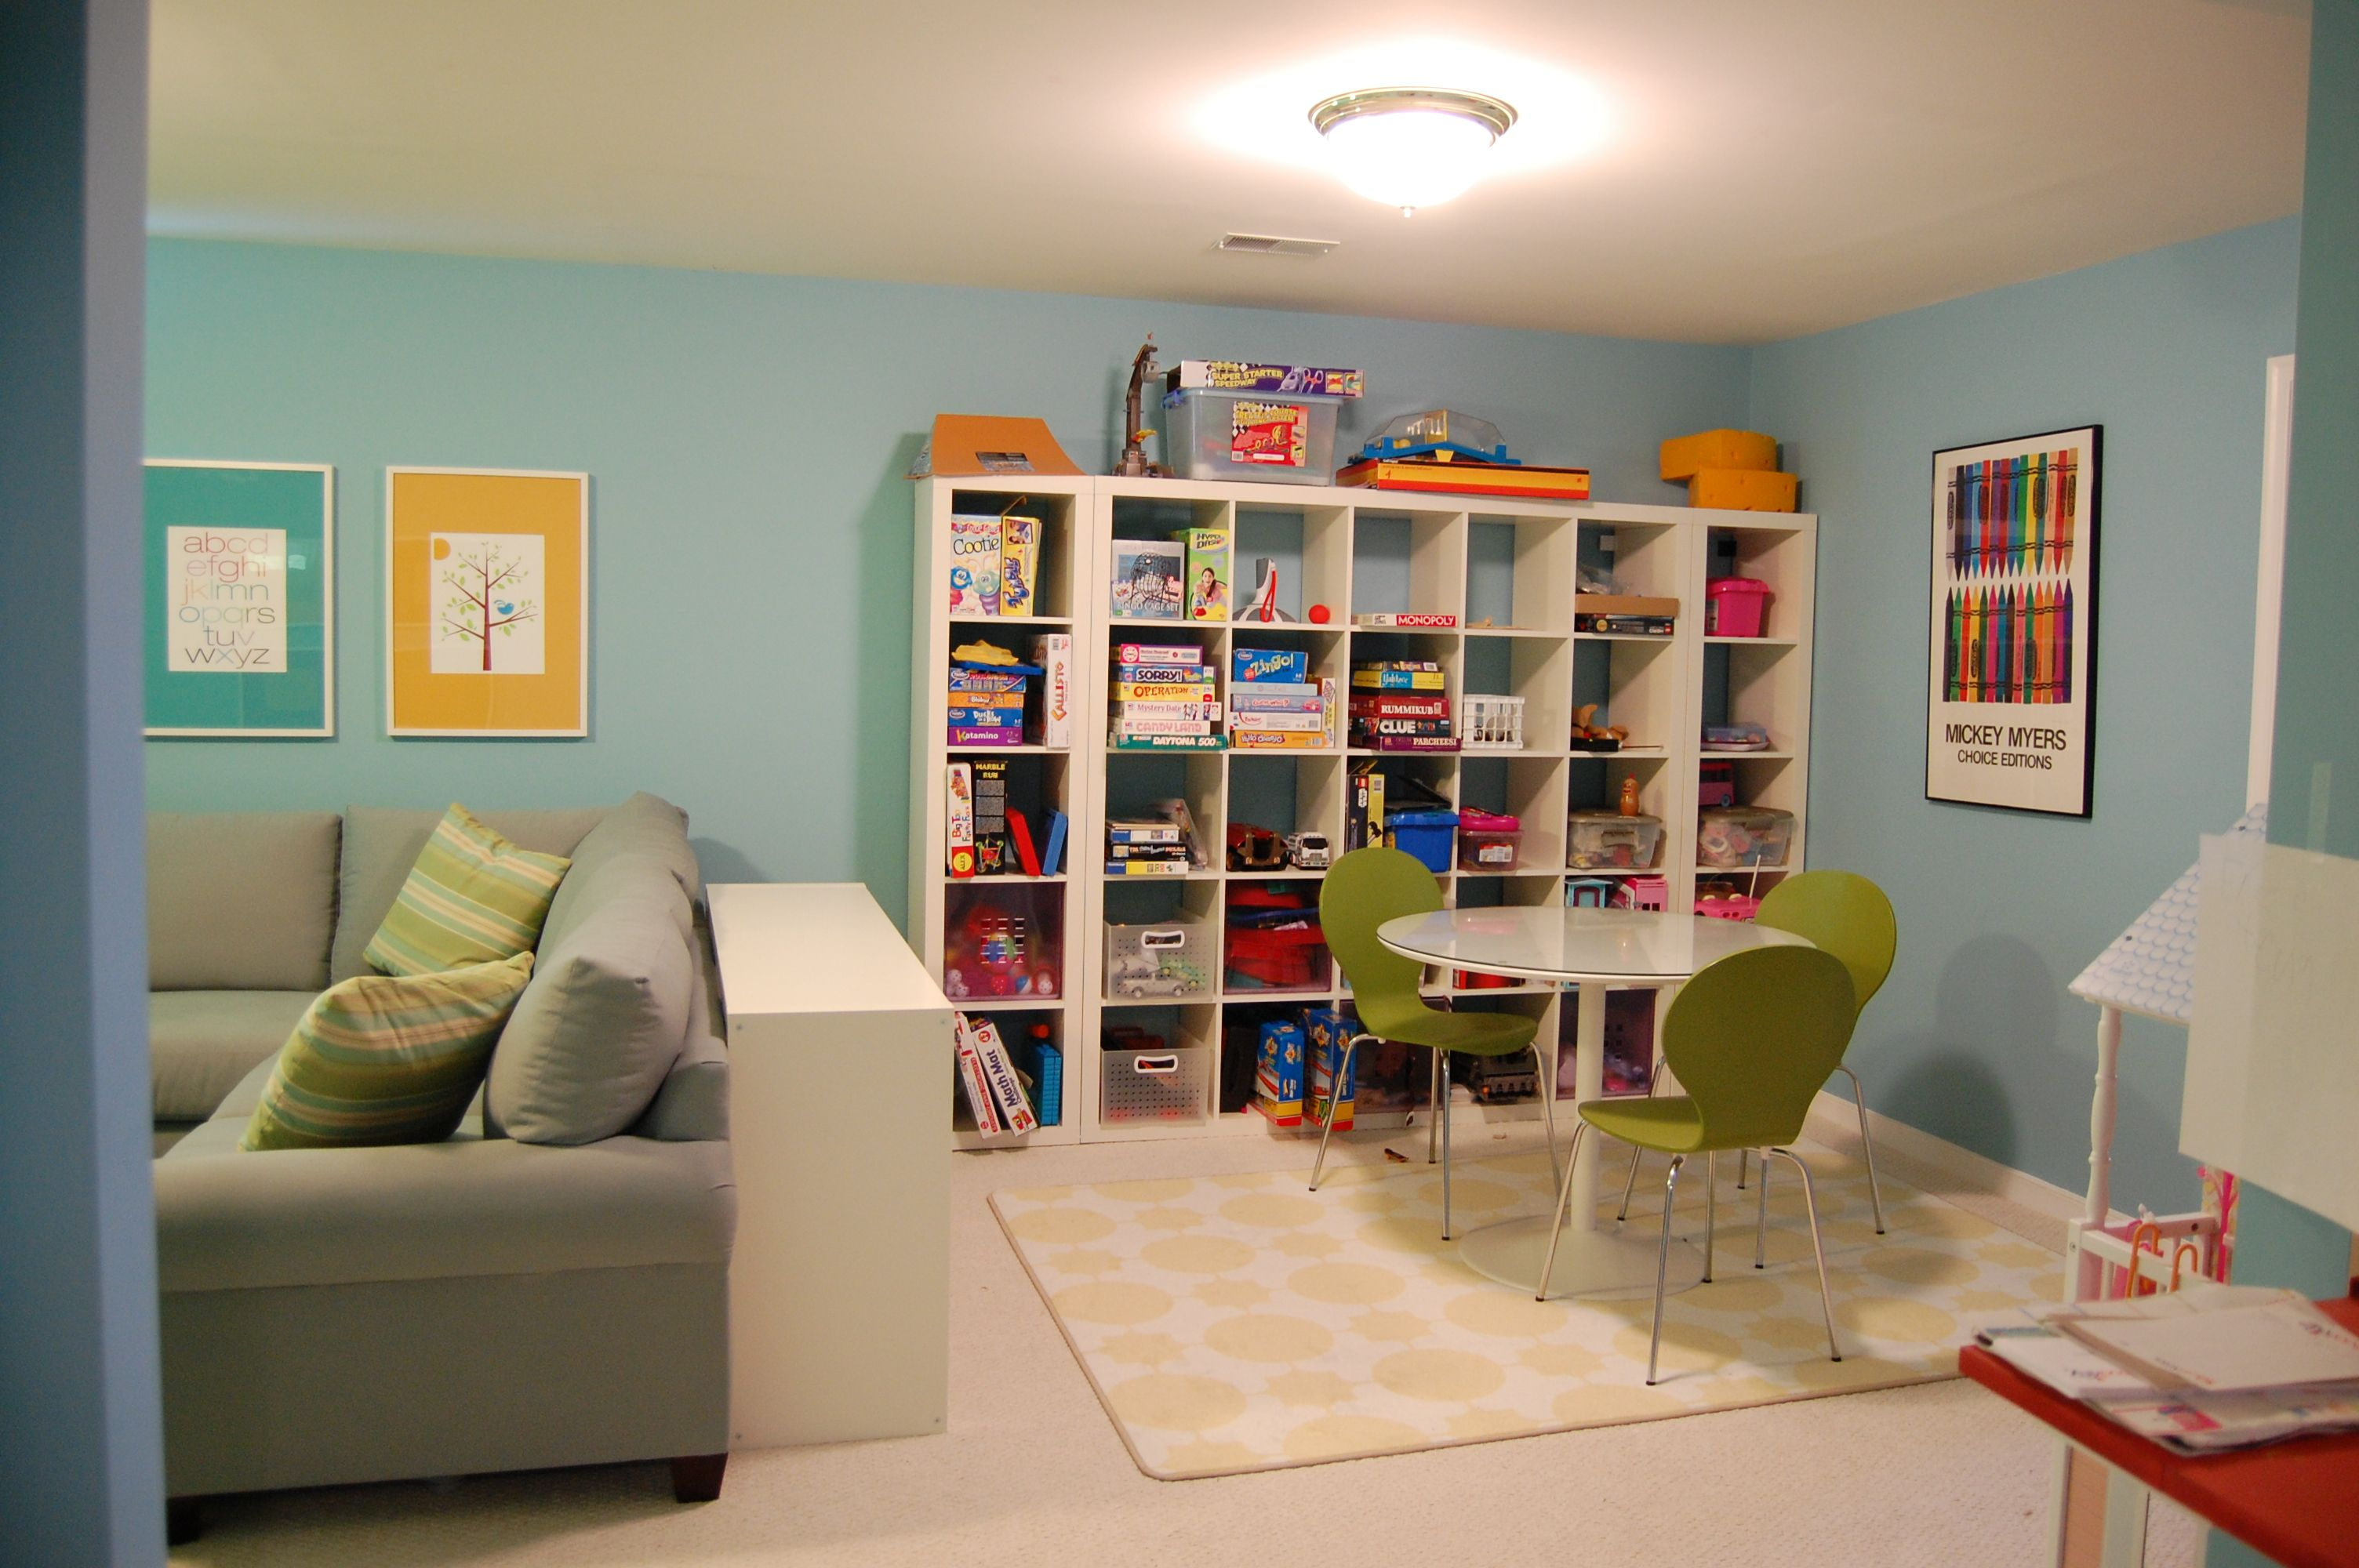 basement ideas for kids area. Fun and Functional Family Playroom  LayoutKids StorageBasement Design LayoutFamily Room Playrooms ideas